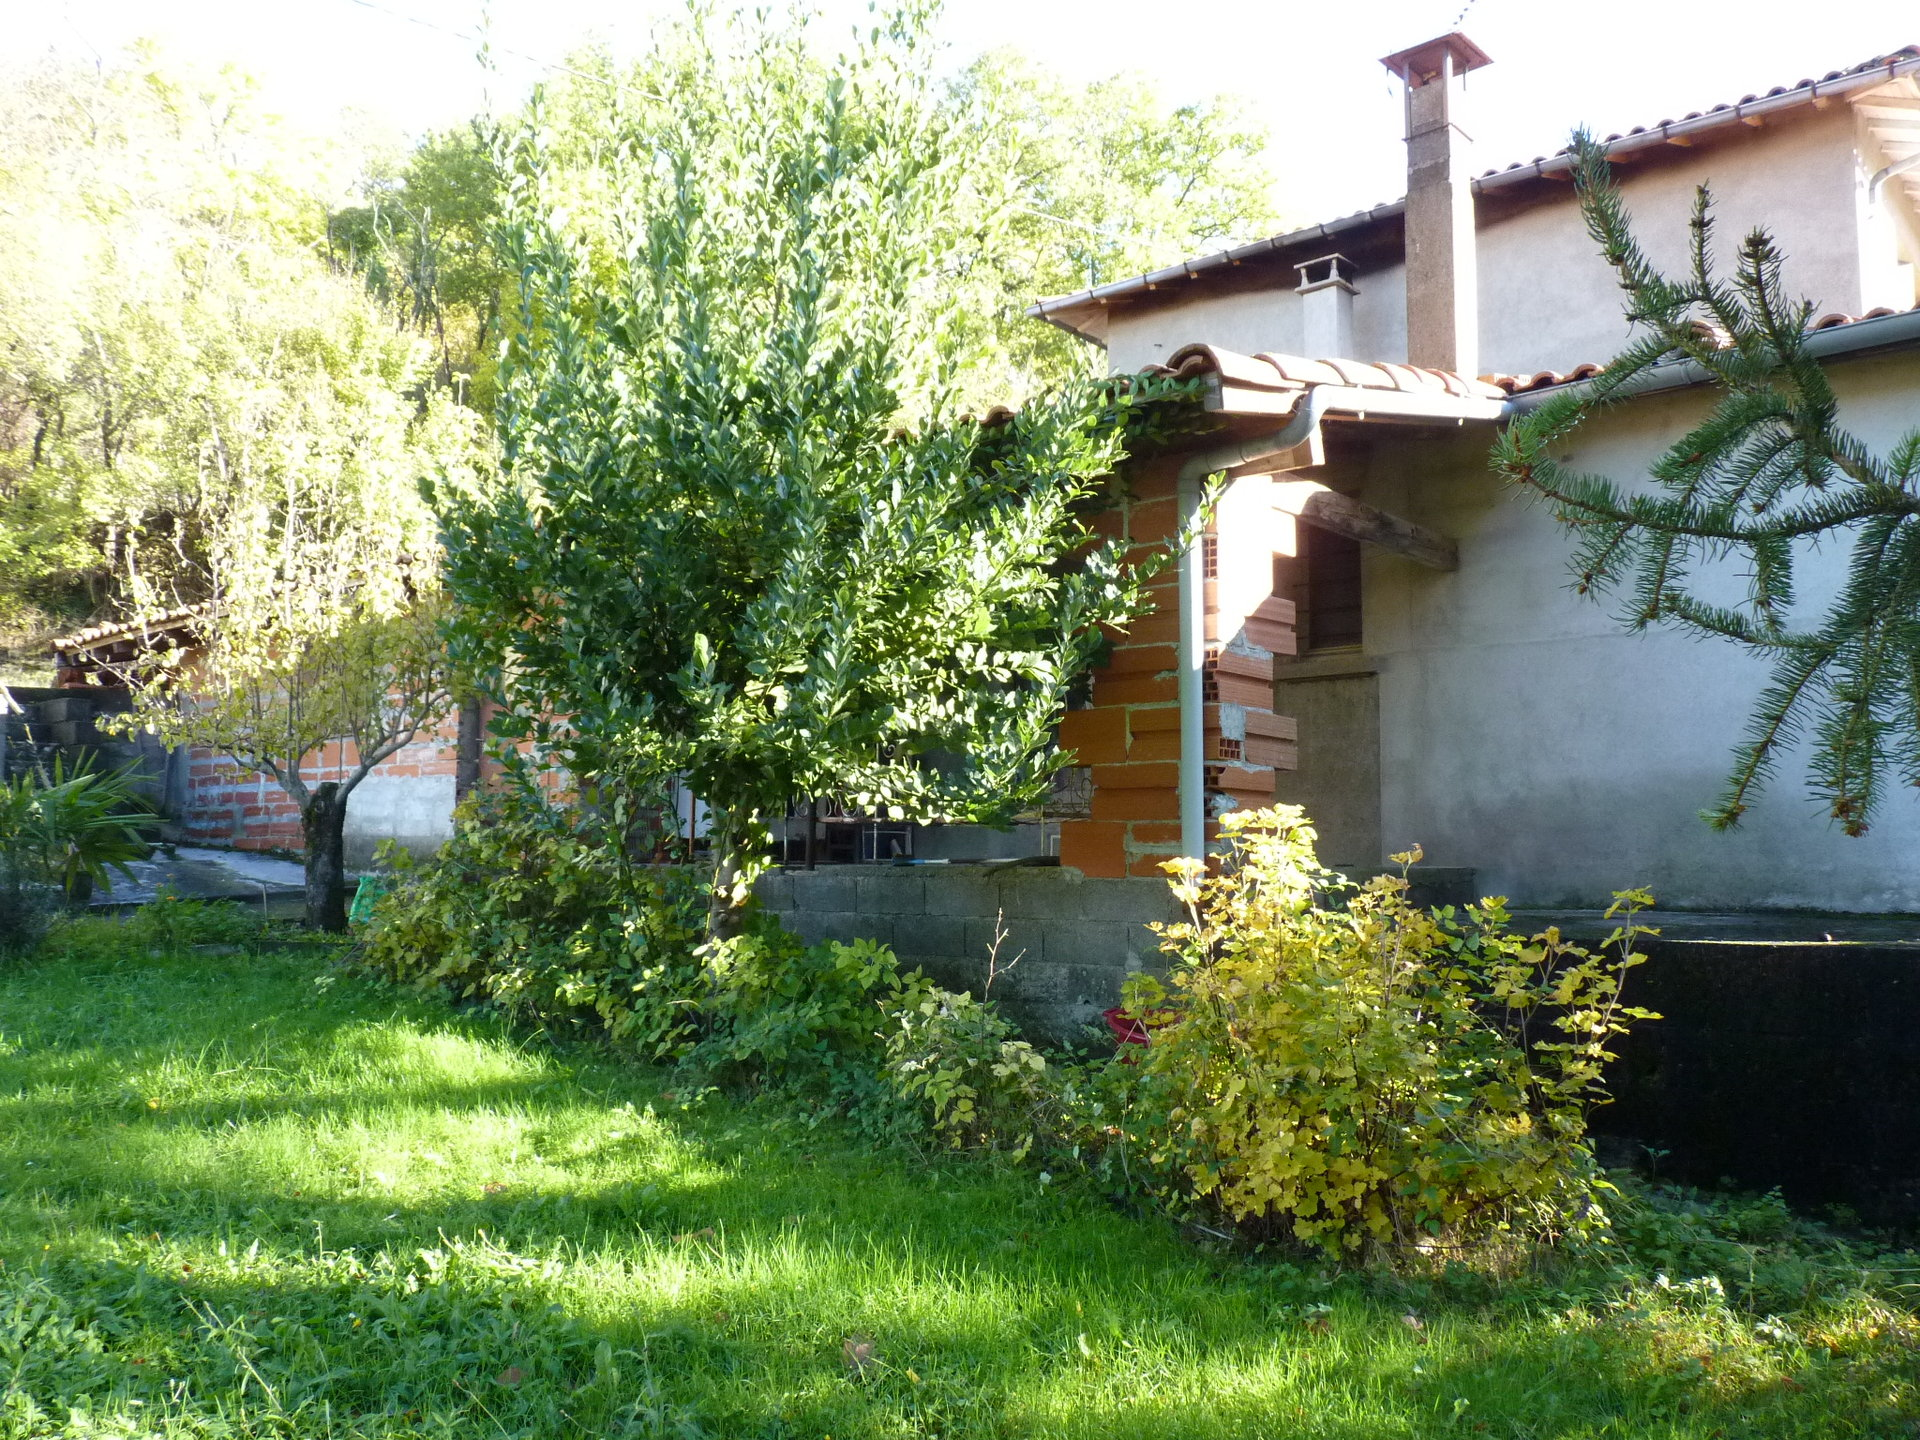 4 Bedroom House in Aurignac With a Beautiful Garden of 4451m²